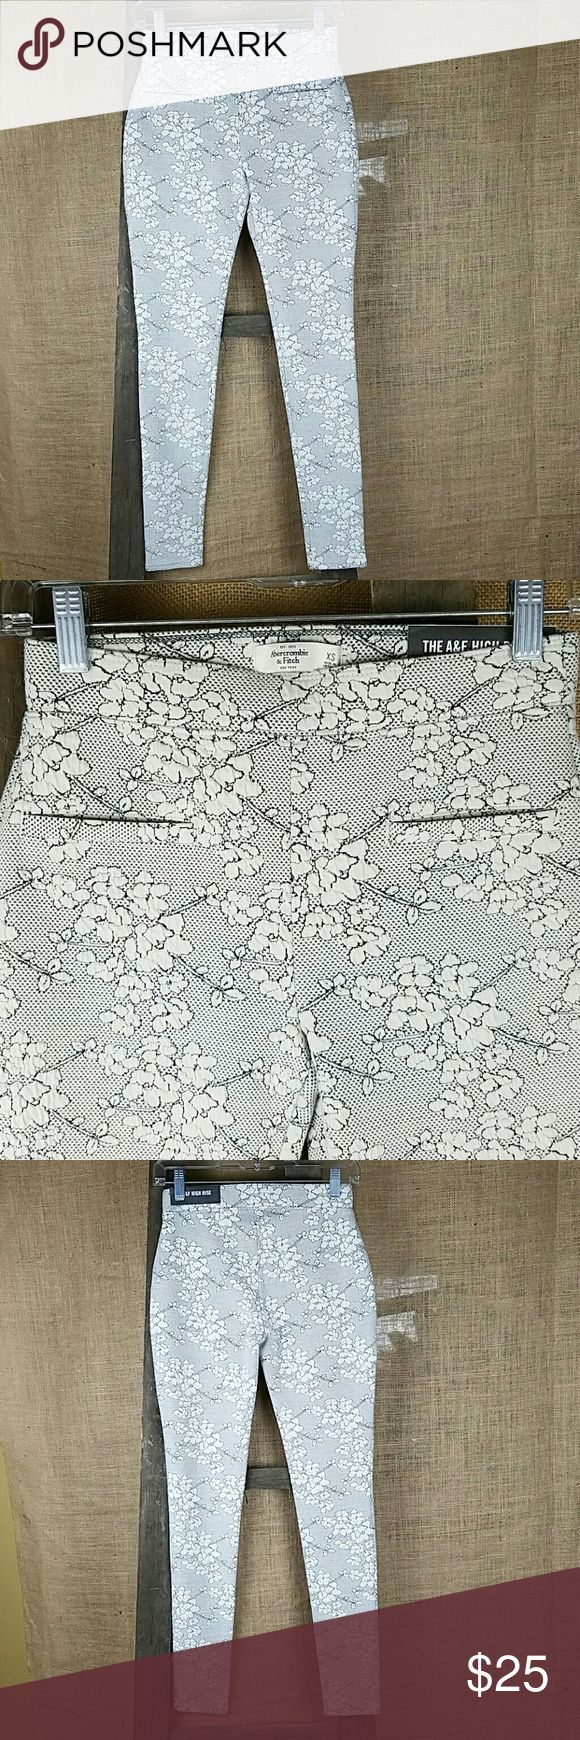 """Abercrombie & Fitch high rise legging floral thick Abercrombie & Fitch high rise legging floral thick XS NWT.  Waist side to side: 12.5"""" Abercrombie & Fitch Pants Leggings"""